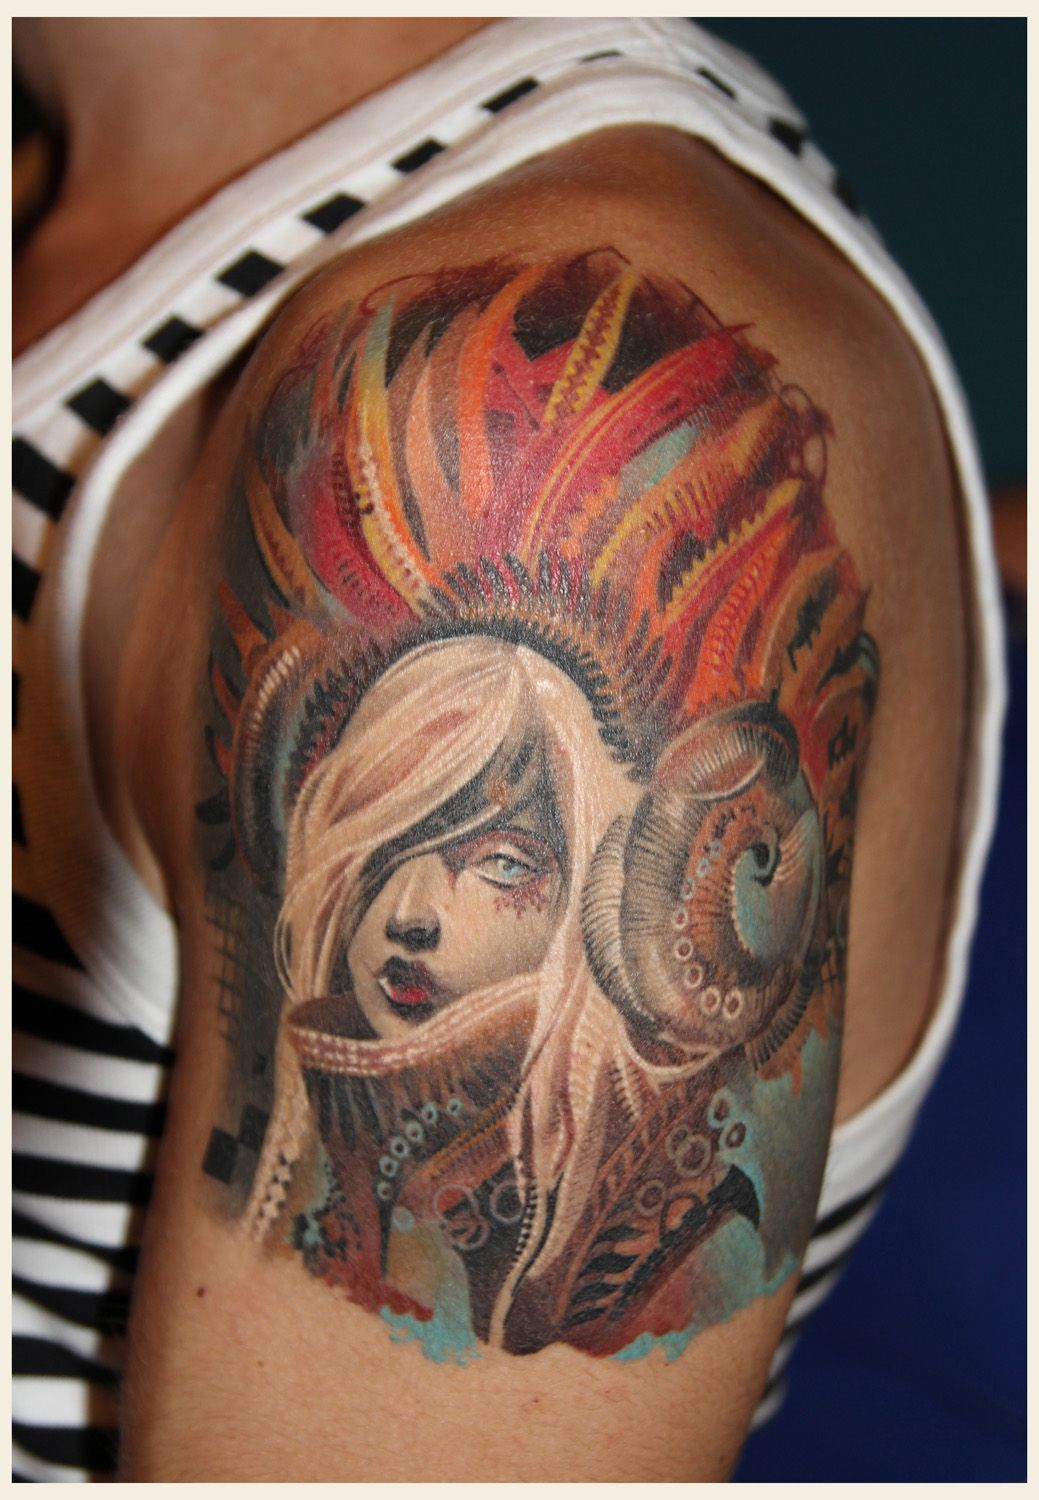 Dia de los Muertos  Artist of art work Android Jones (I think)  Tattoo Artist Unknown